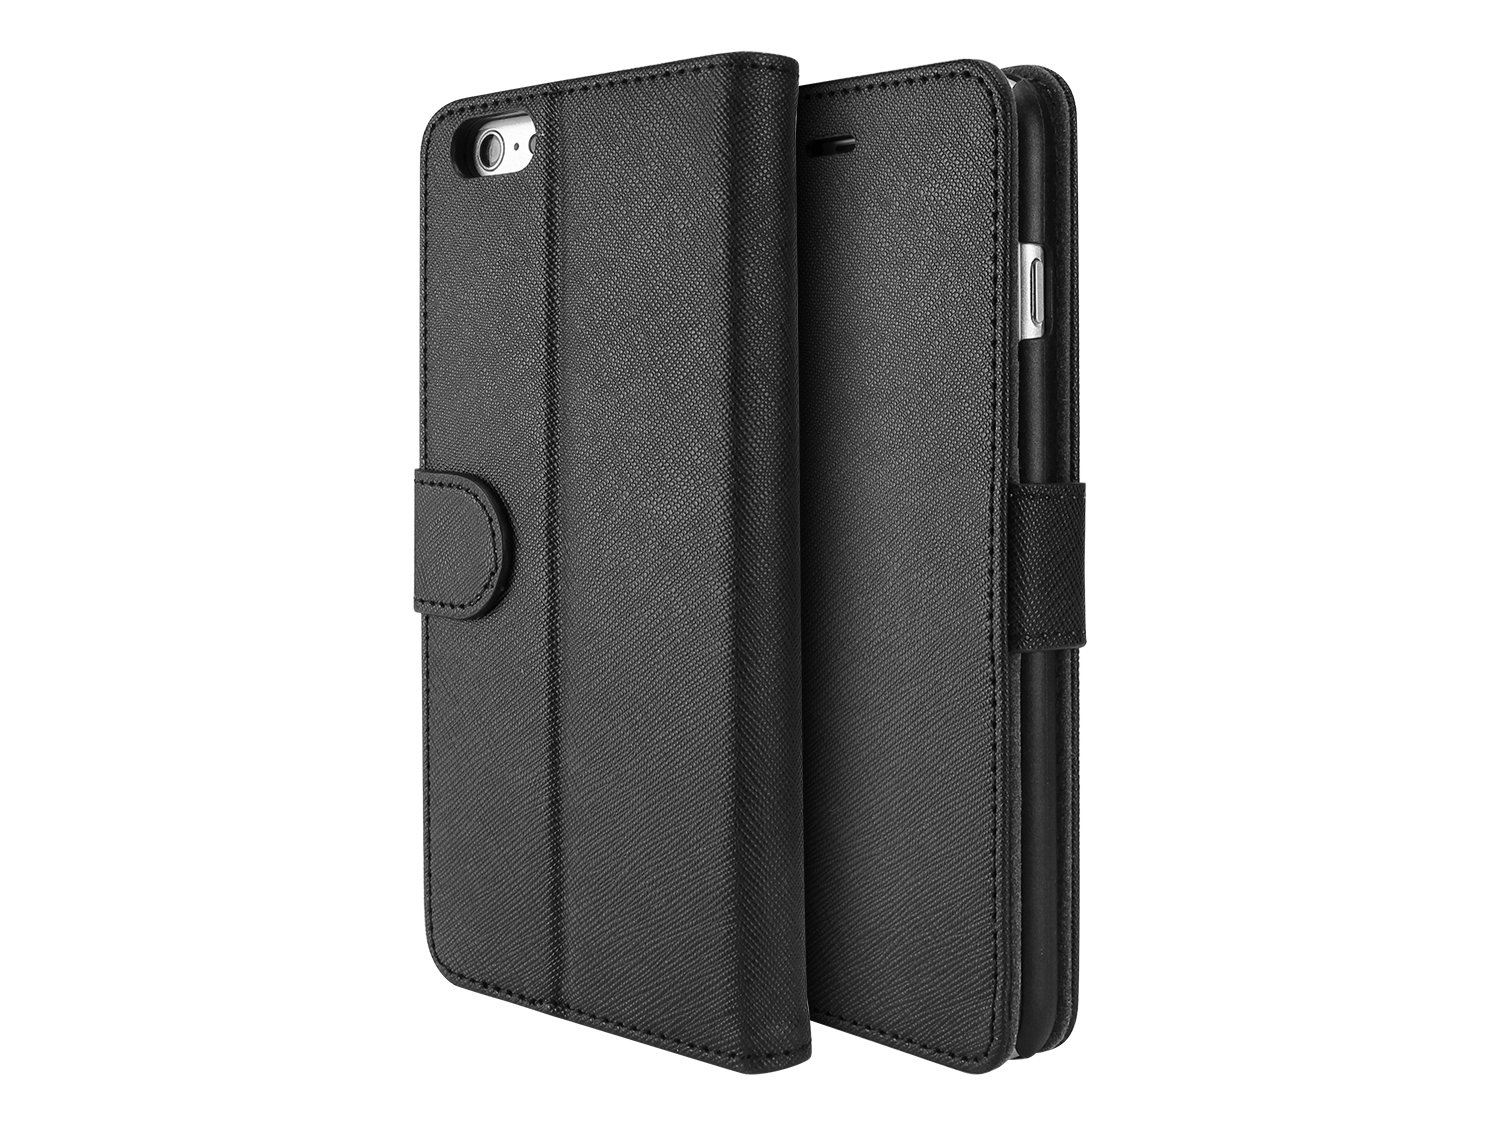 Apple iPhone 6 Diary Wallet Case at Sears.com